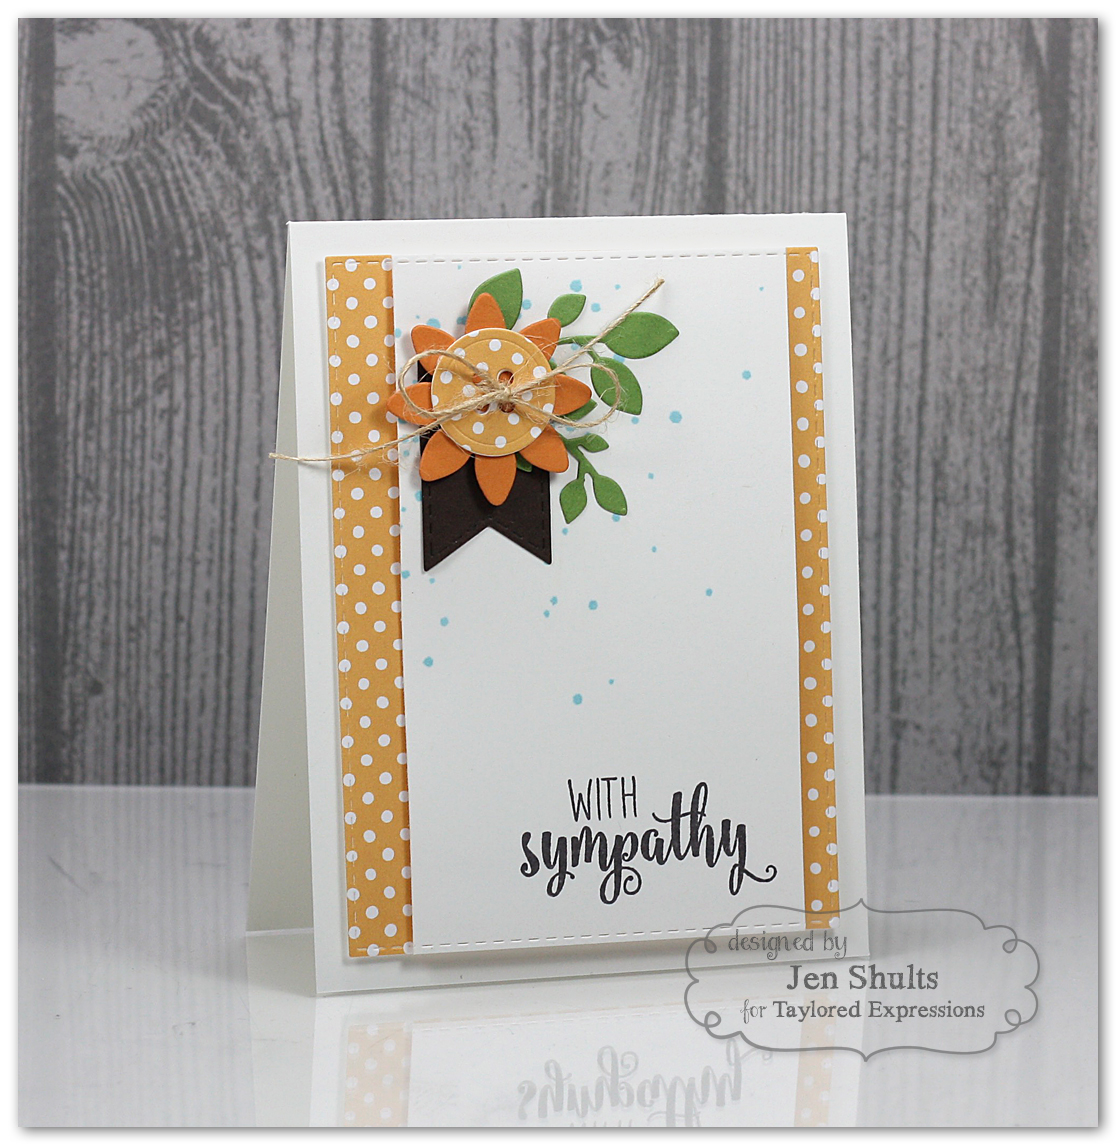 With Sympathy by Jen Shults using Share Joy Challenge 20. Stamps and dies from Taylored Expressions